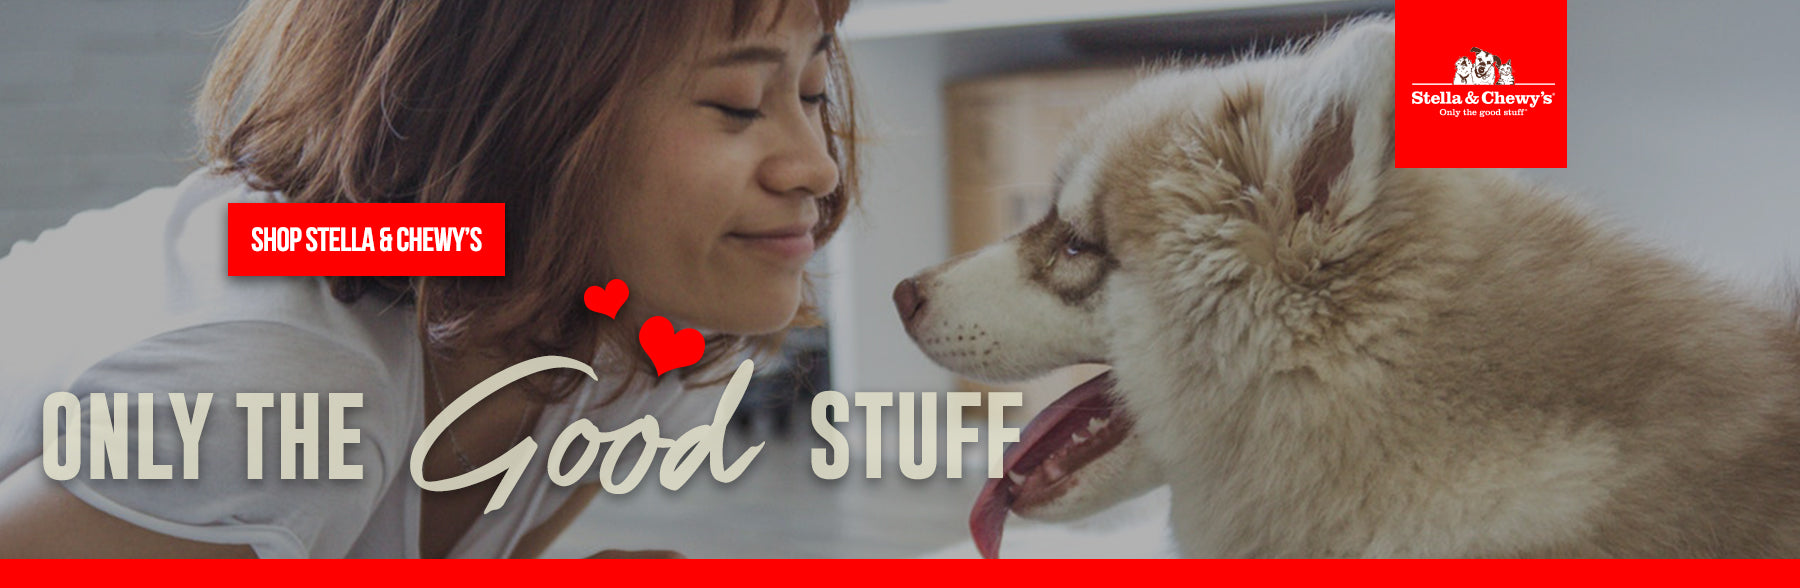 Stella and Chewy banner